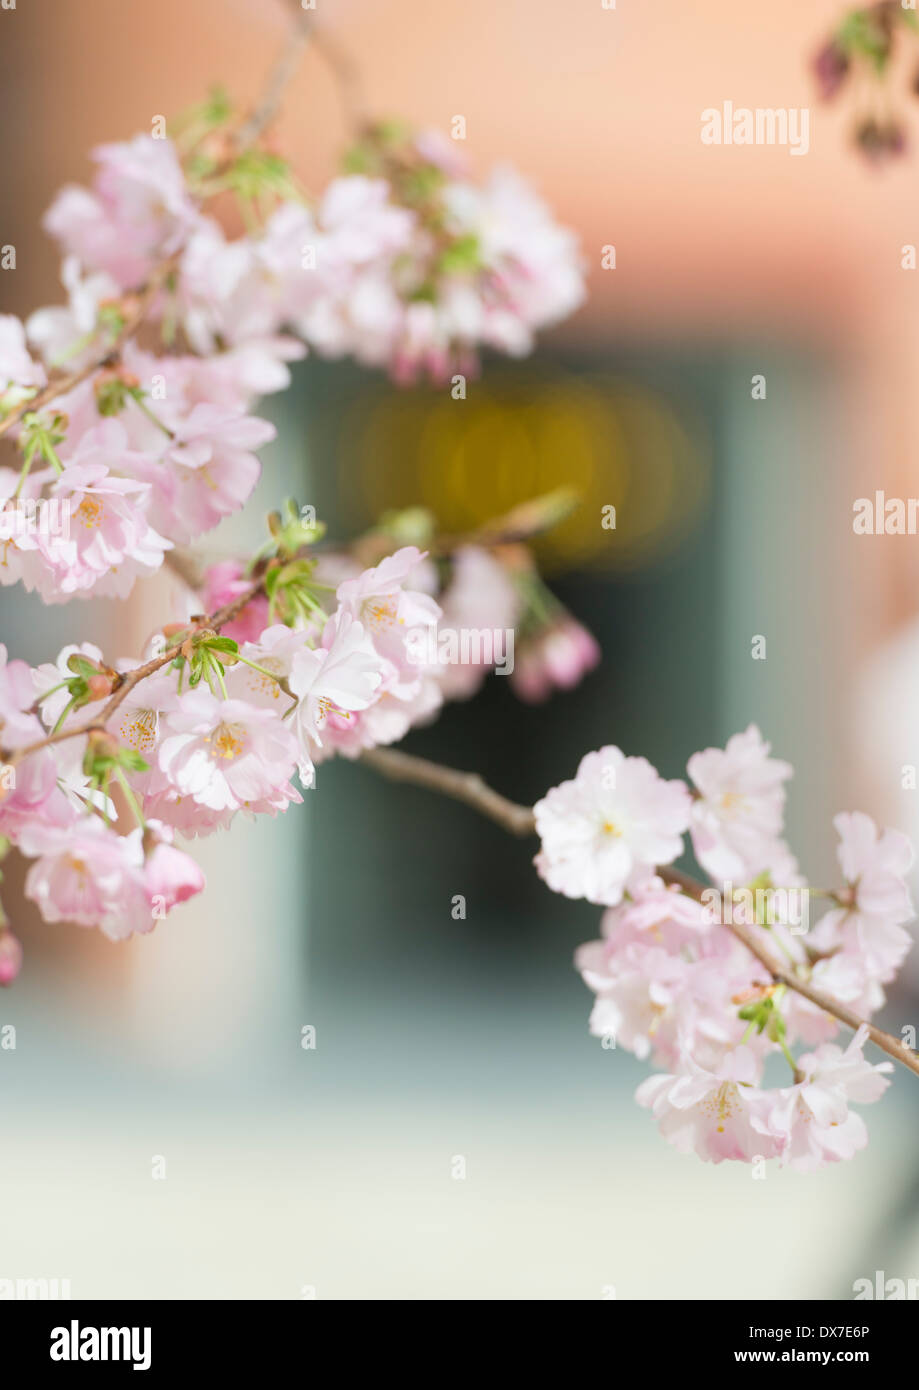 Cherry Blossom on the trees in Oozells Square, Brindleyplace, Birmingham. - Stock Image